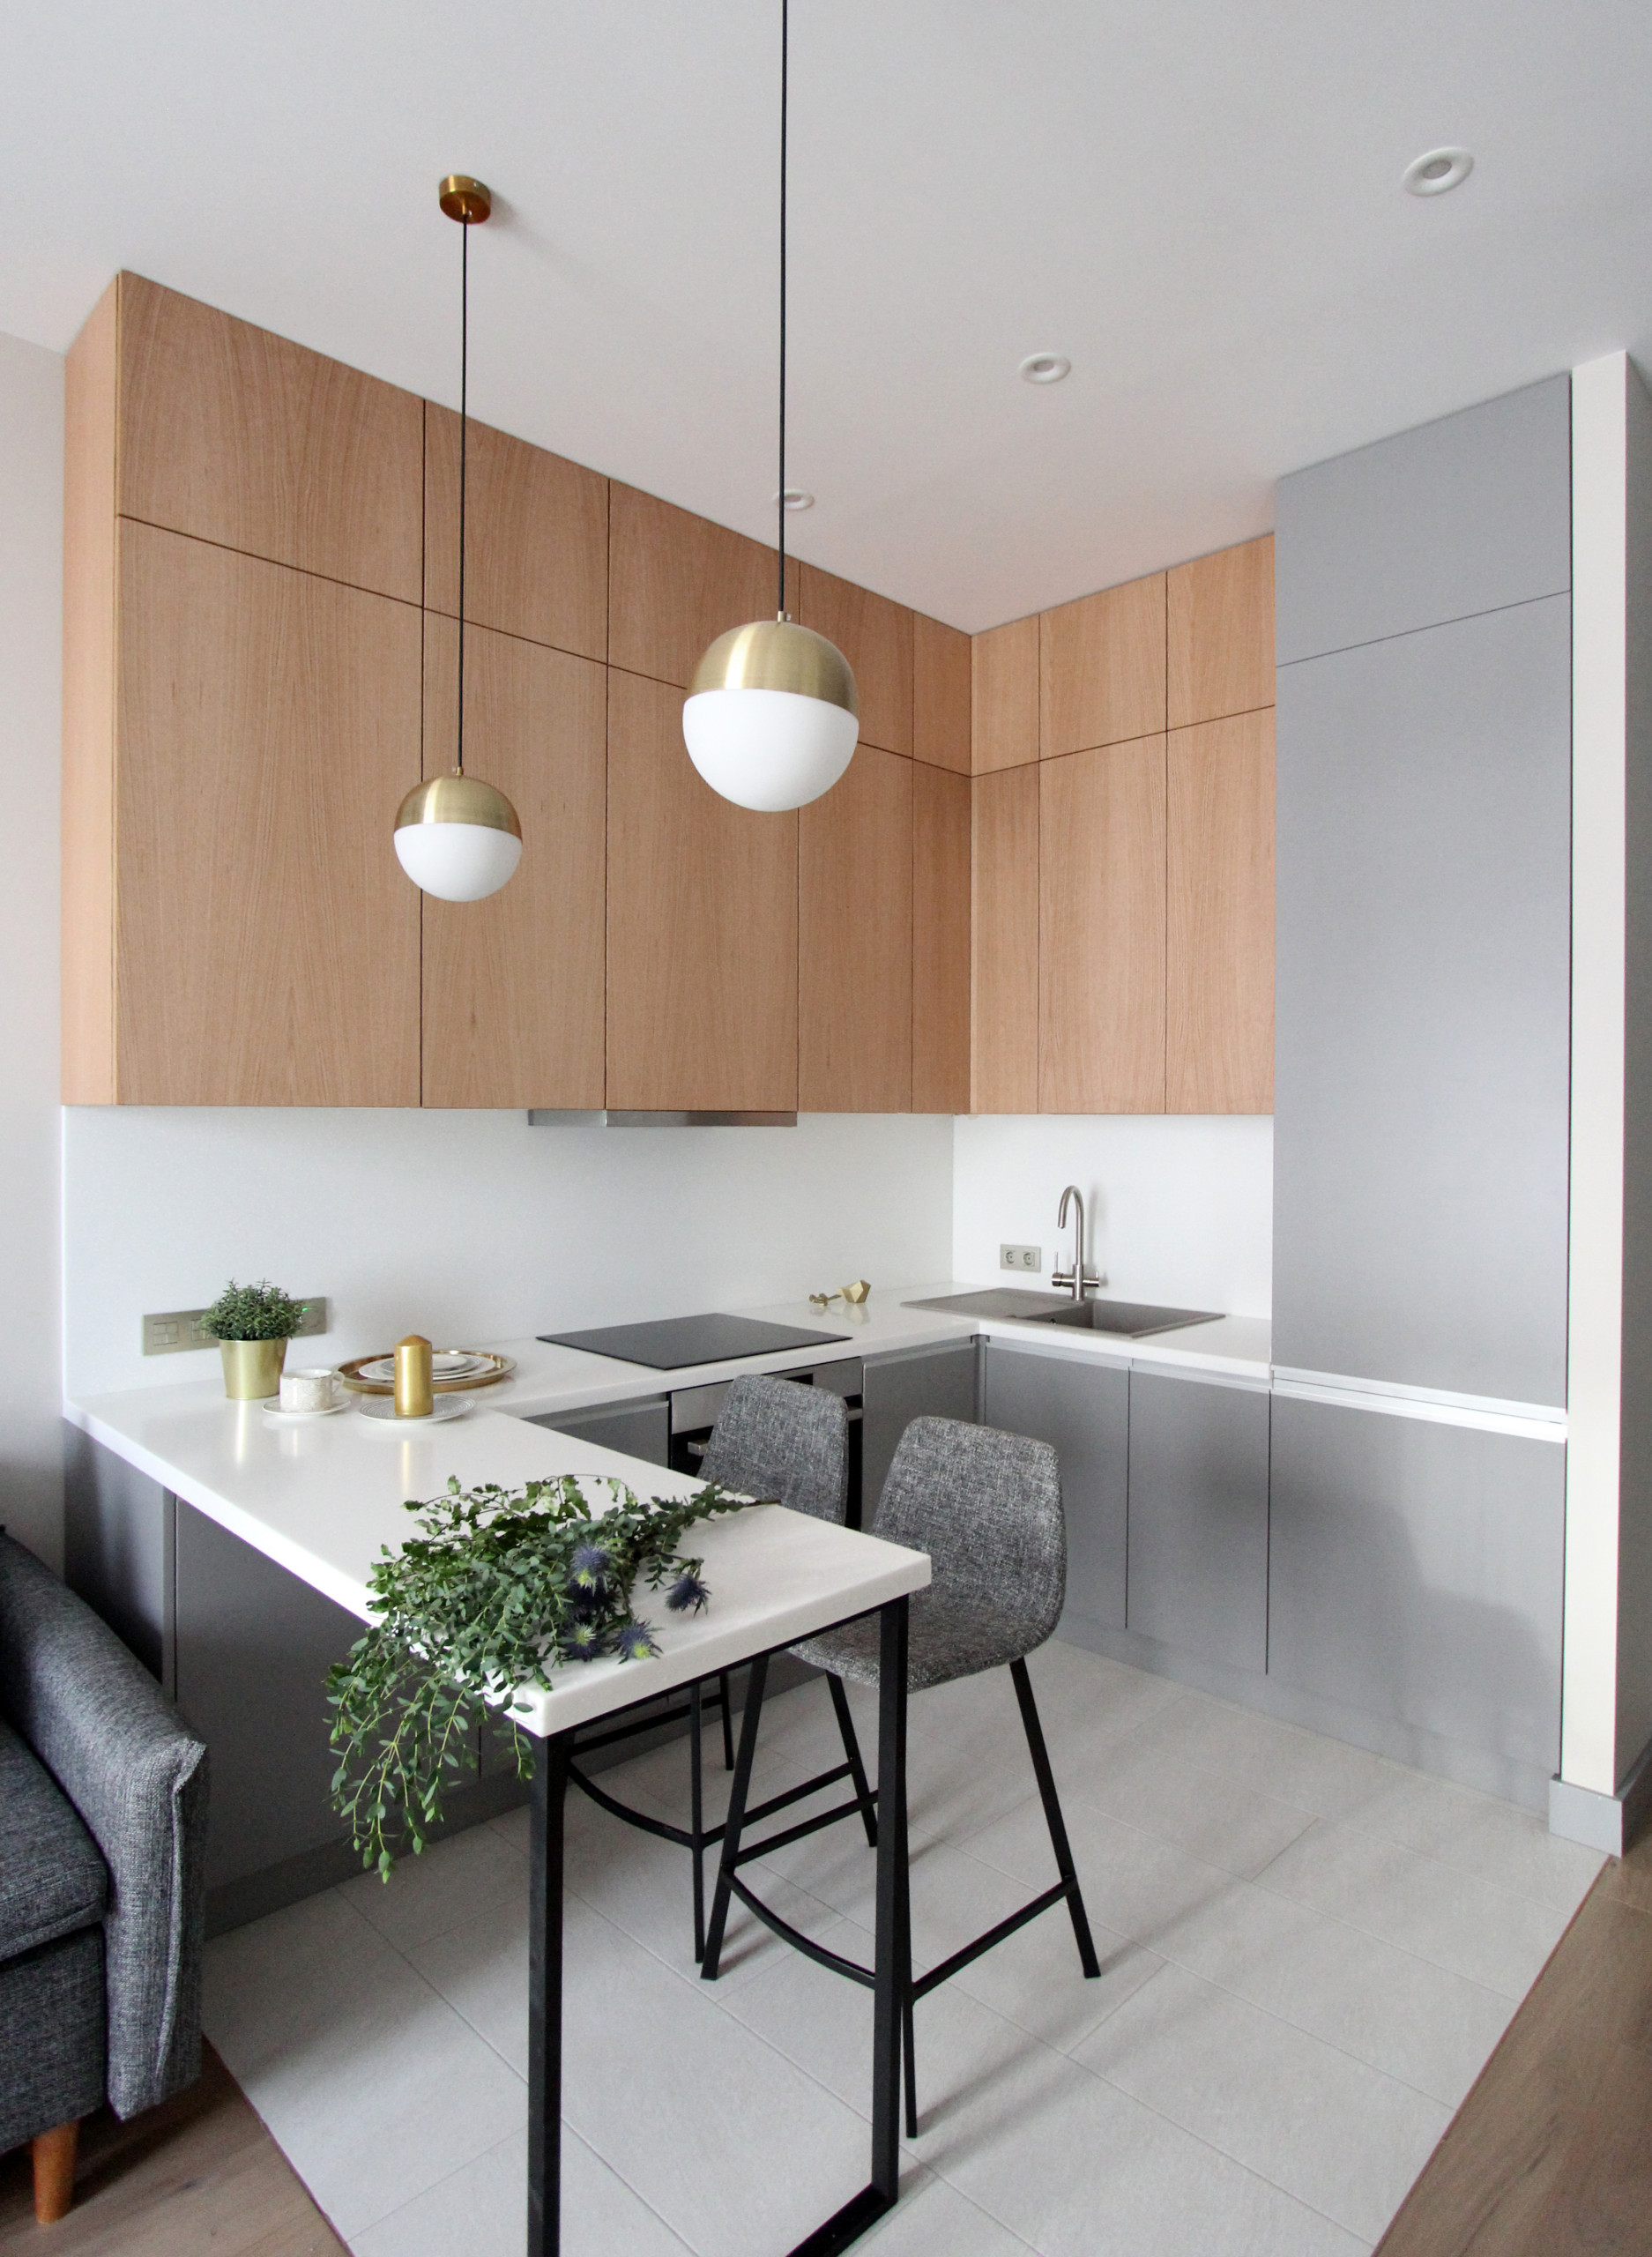 75 Beautiful Kitchen With A Peninsula Pictures Ideas February 2021 Houzz